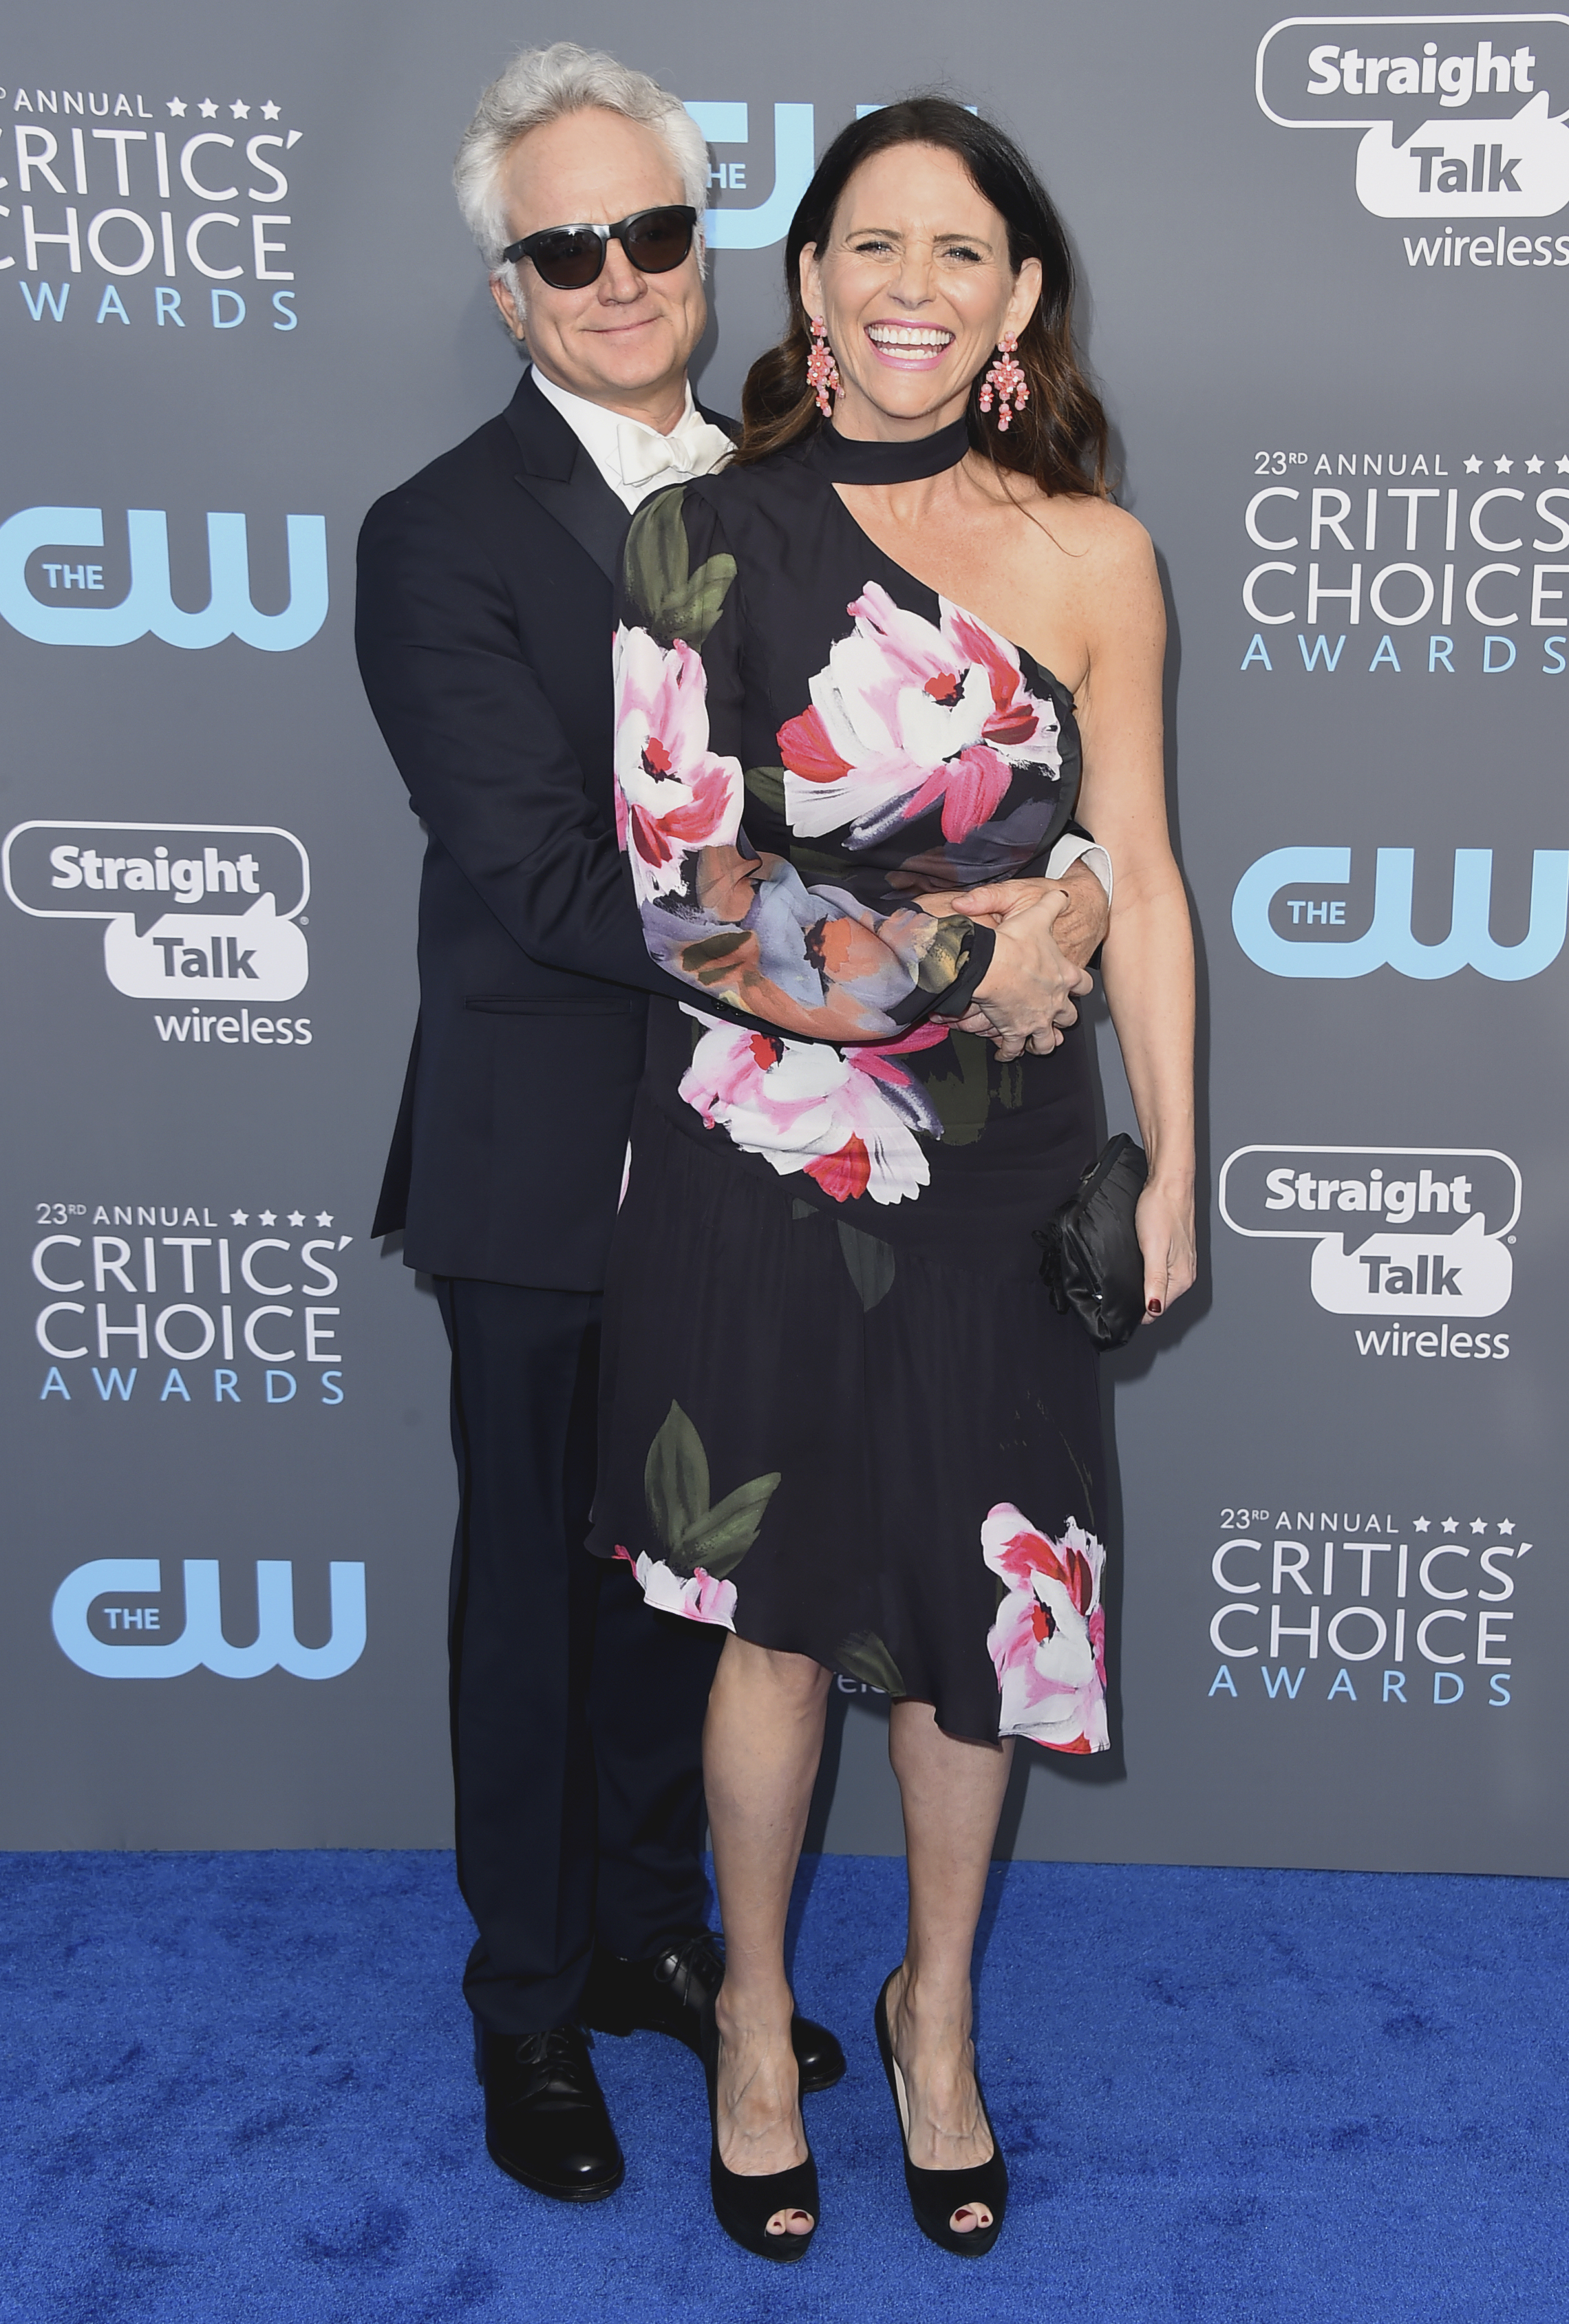 <div class='meta'><div class='origin-logo' data-origin='AP'></div><span class='caption-text' data-credit='Jordan Strauss/Invision/AP'>Bradley Whitford, left, and Amy Landecker arrive at the 23rd annual Critics' Choice Awards at the Barker Hangar on Thursday, Jan. 11, 2018, in Santa Monica, Calif.</span></div>